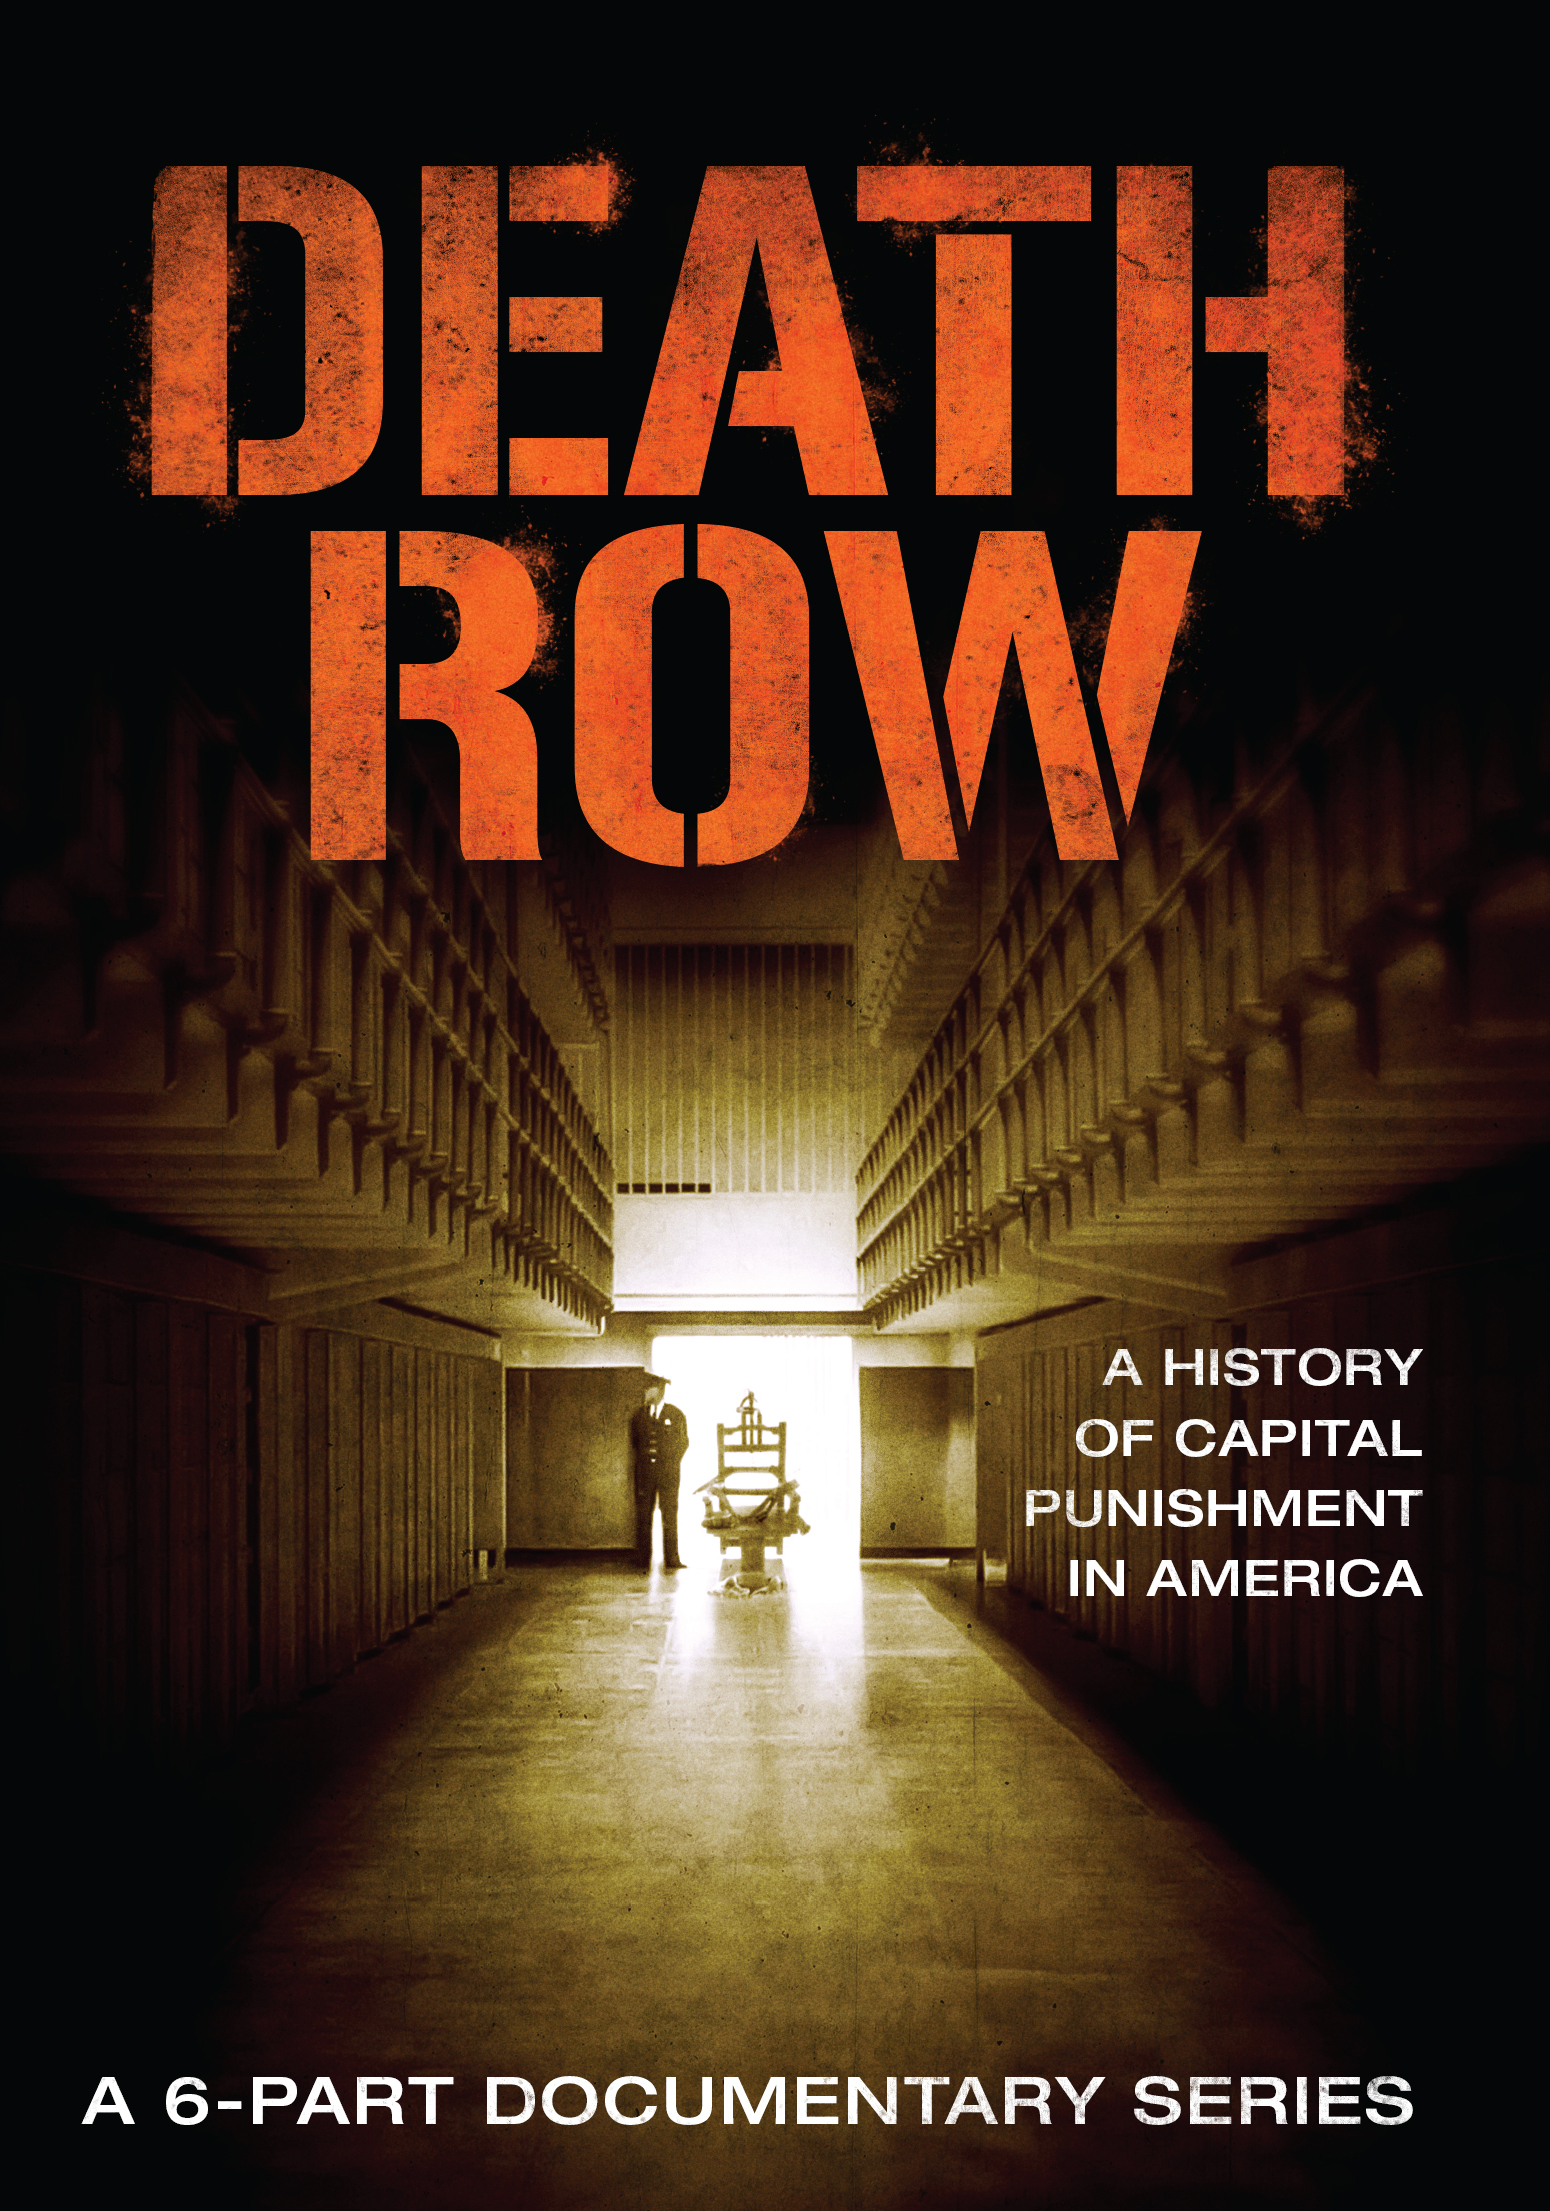 history of capital punishment The infliction by due legal process of the penalty of death as a punishment for crime.